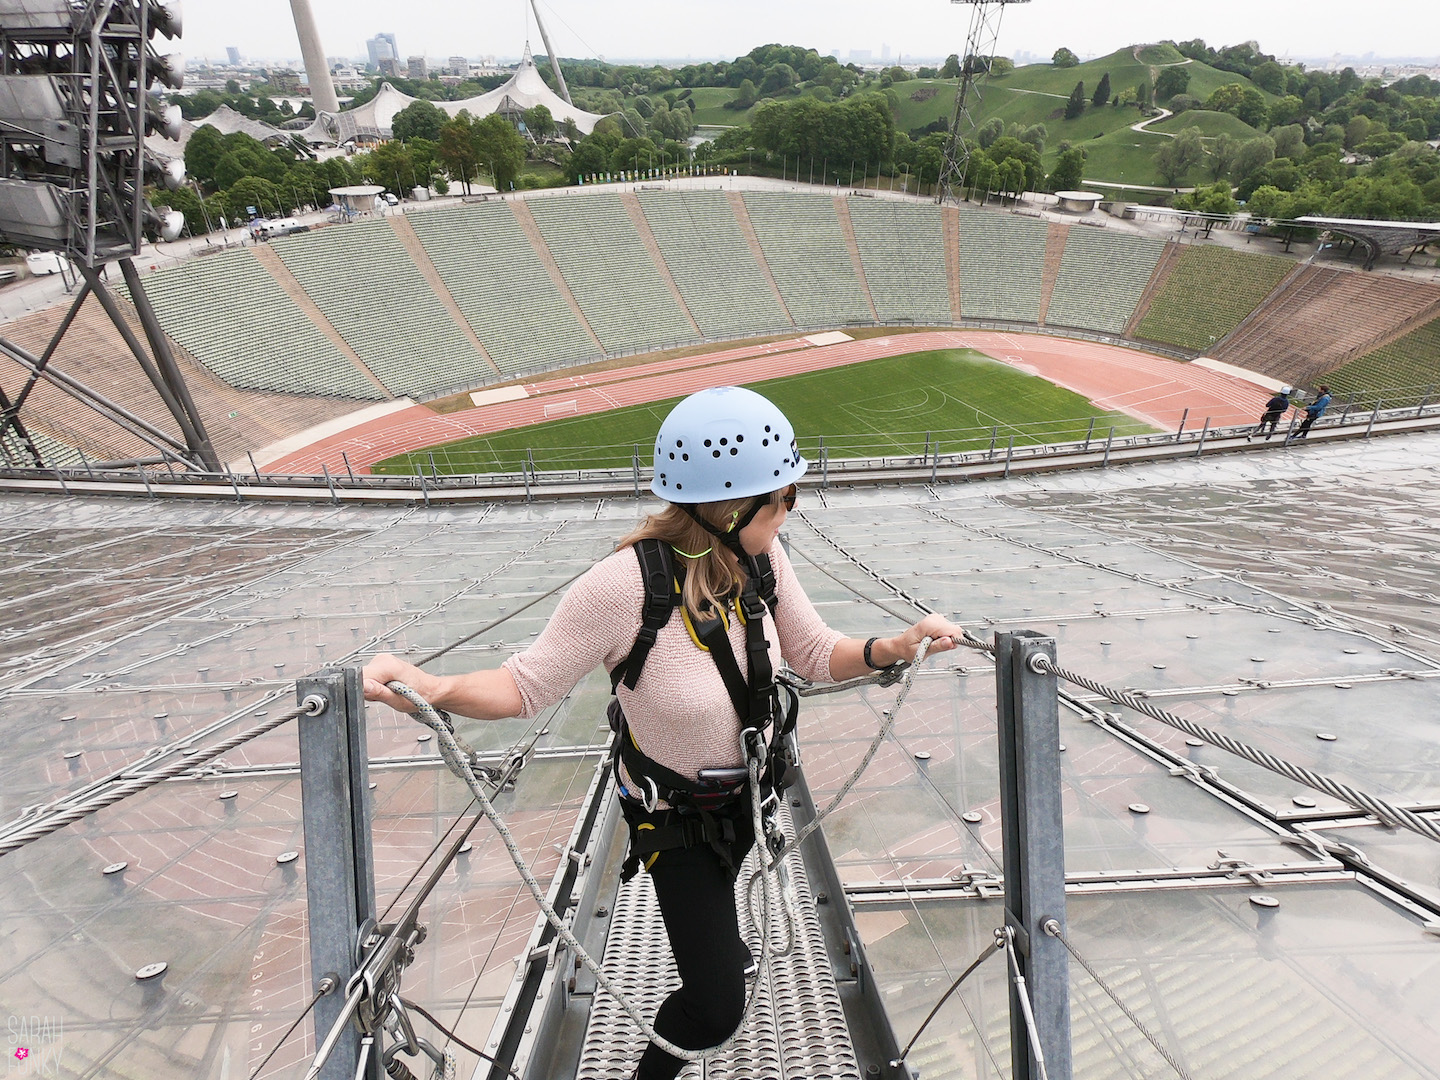 The rooftop tour at OlyMpic StadiuM